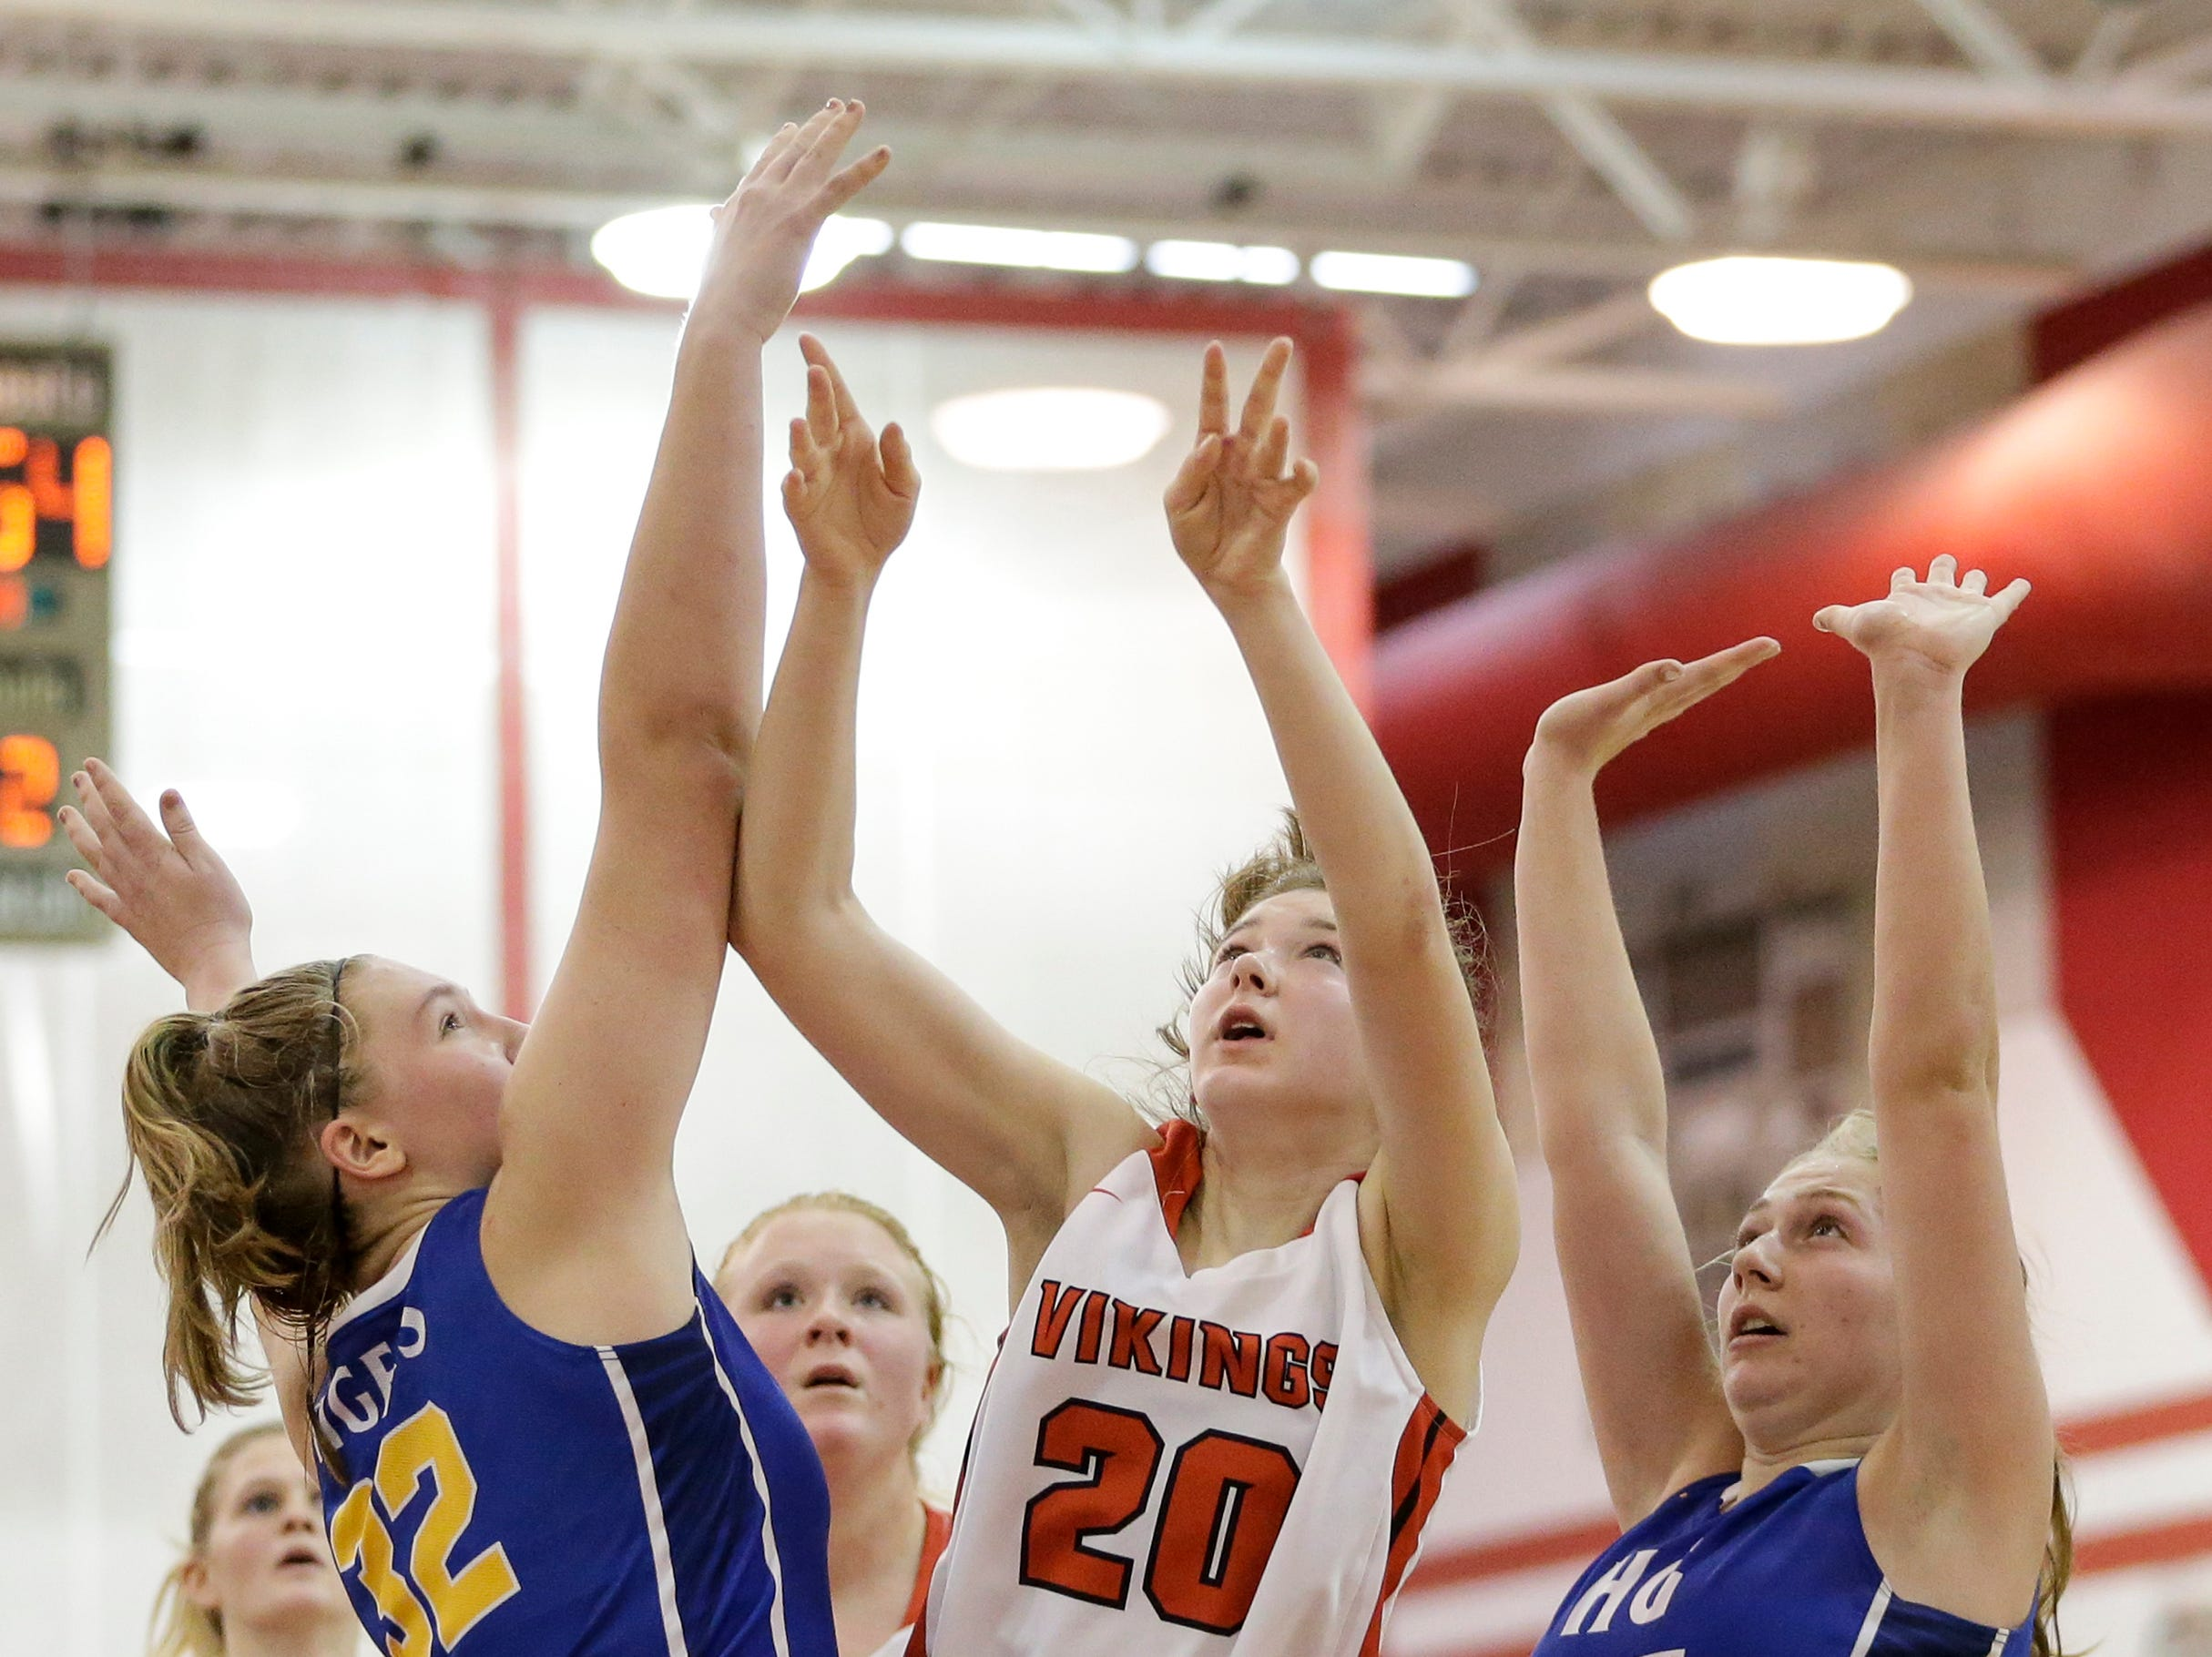 Valders' Kate Wagner (20) looks to shoot against Howards Grove in a non-conference game at Valders High School Saturday, January 19, 2019, in Valders, Wis. Joshua Clark/USA TODAY NETWORK-Wisconsin